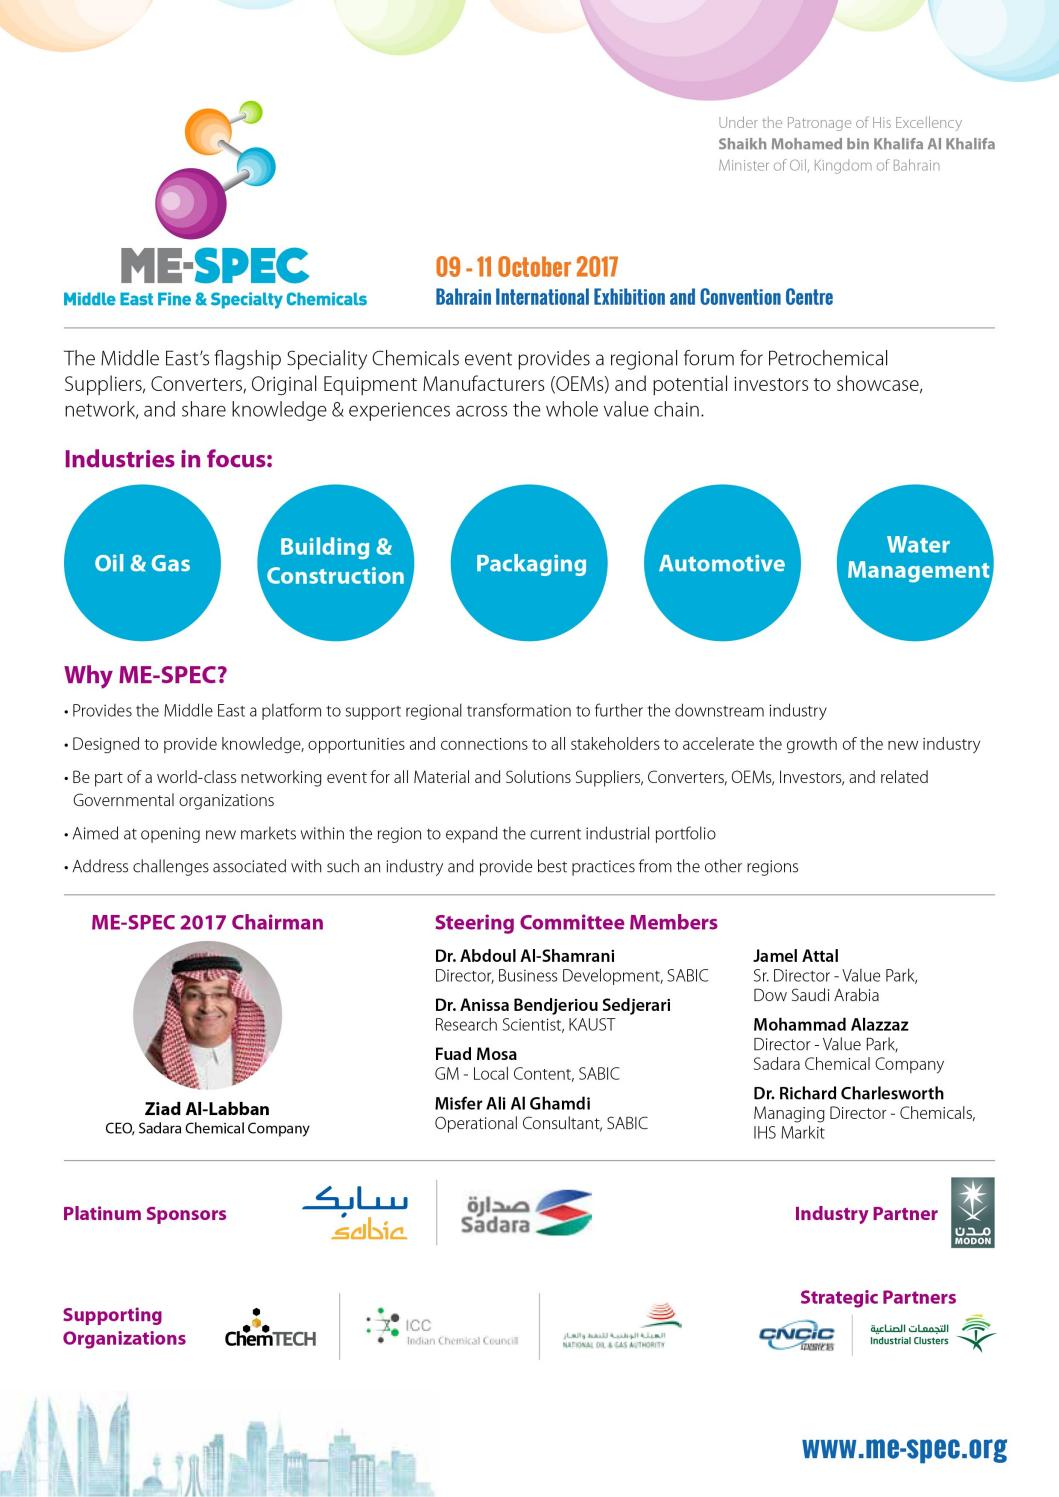 Middle East Fine & Speciality Chemicals 2017 by Hannah